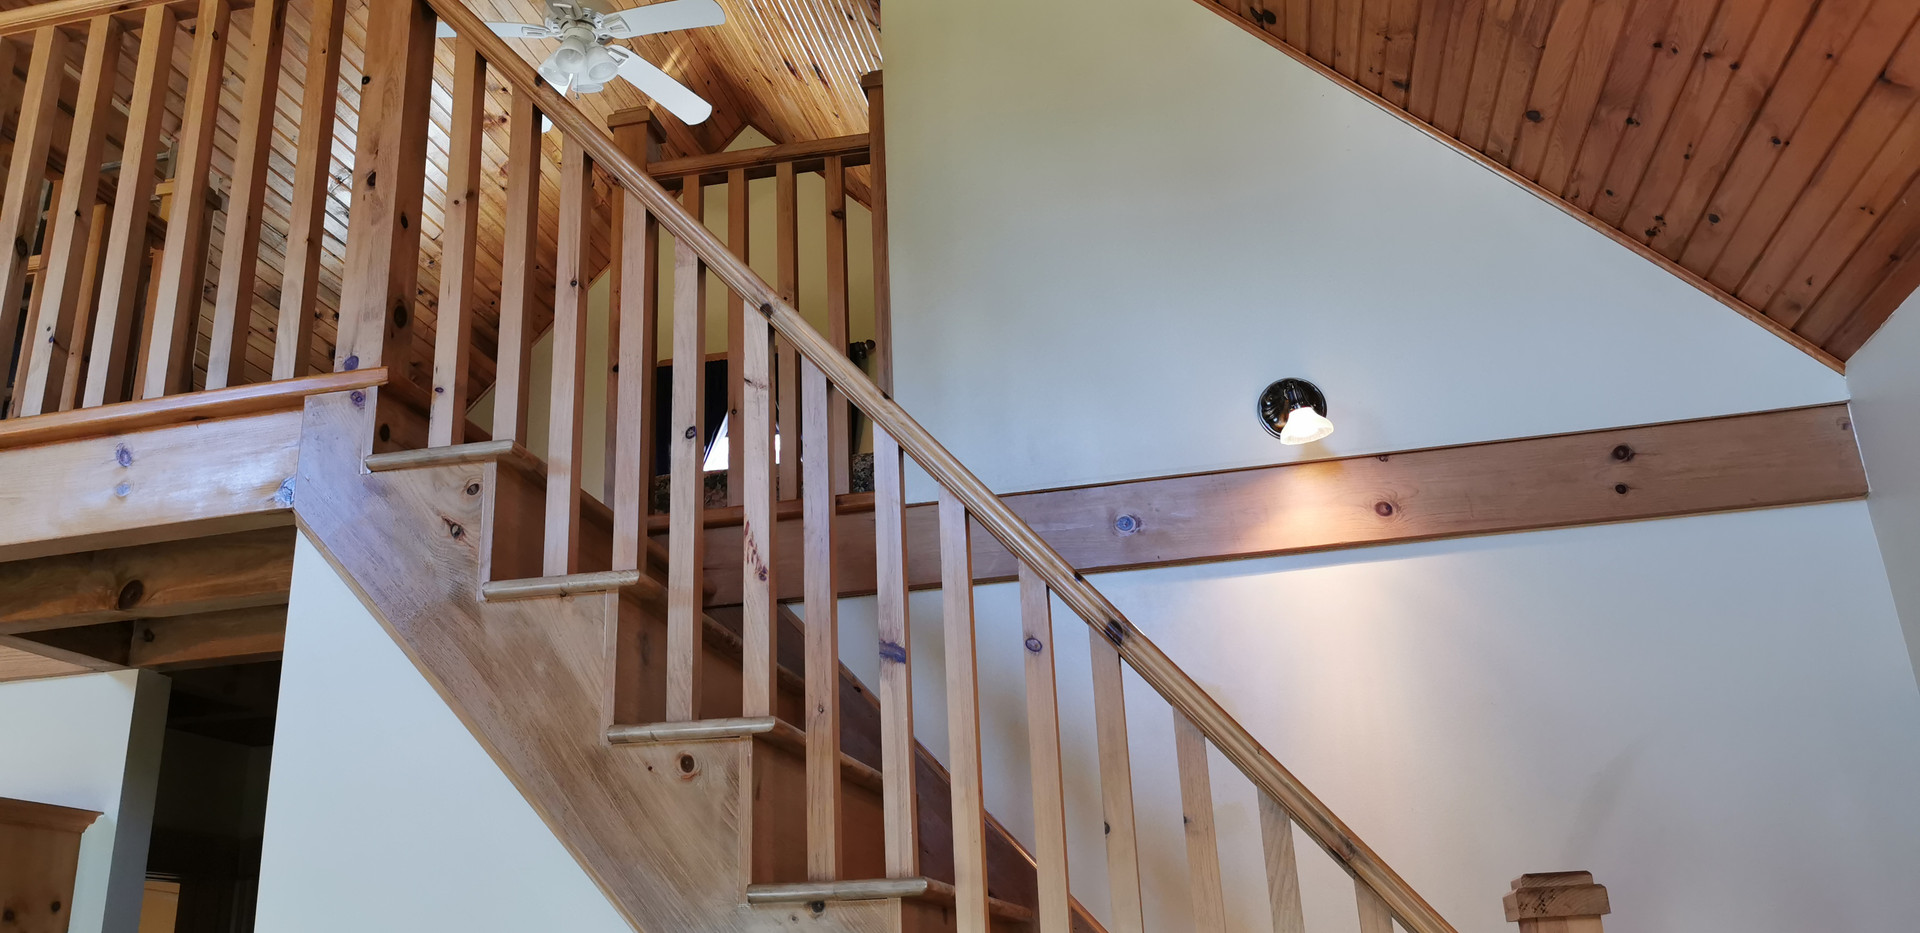 Stair to the loft